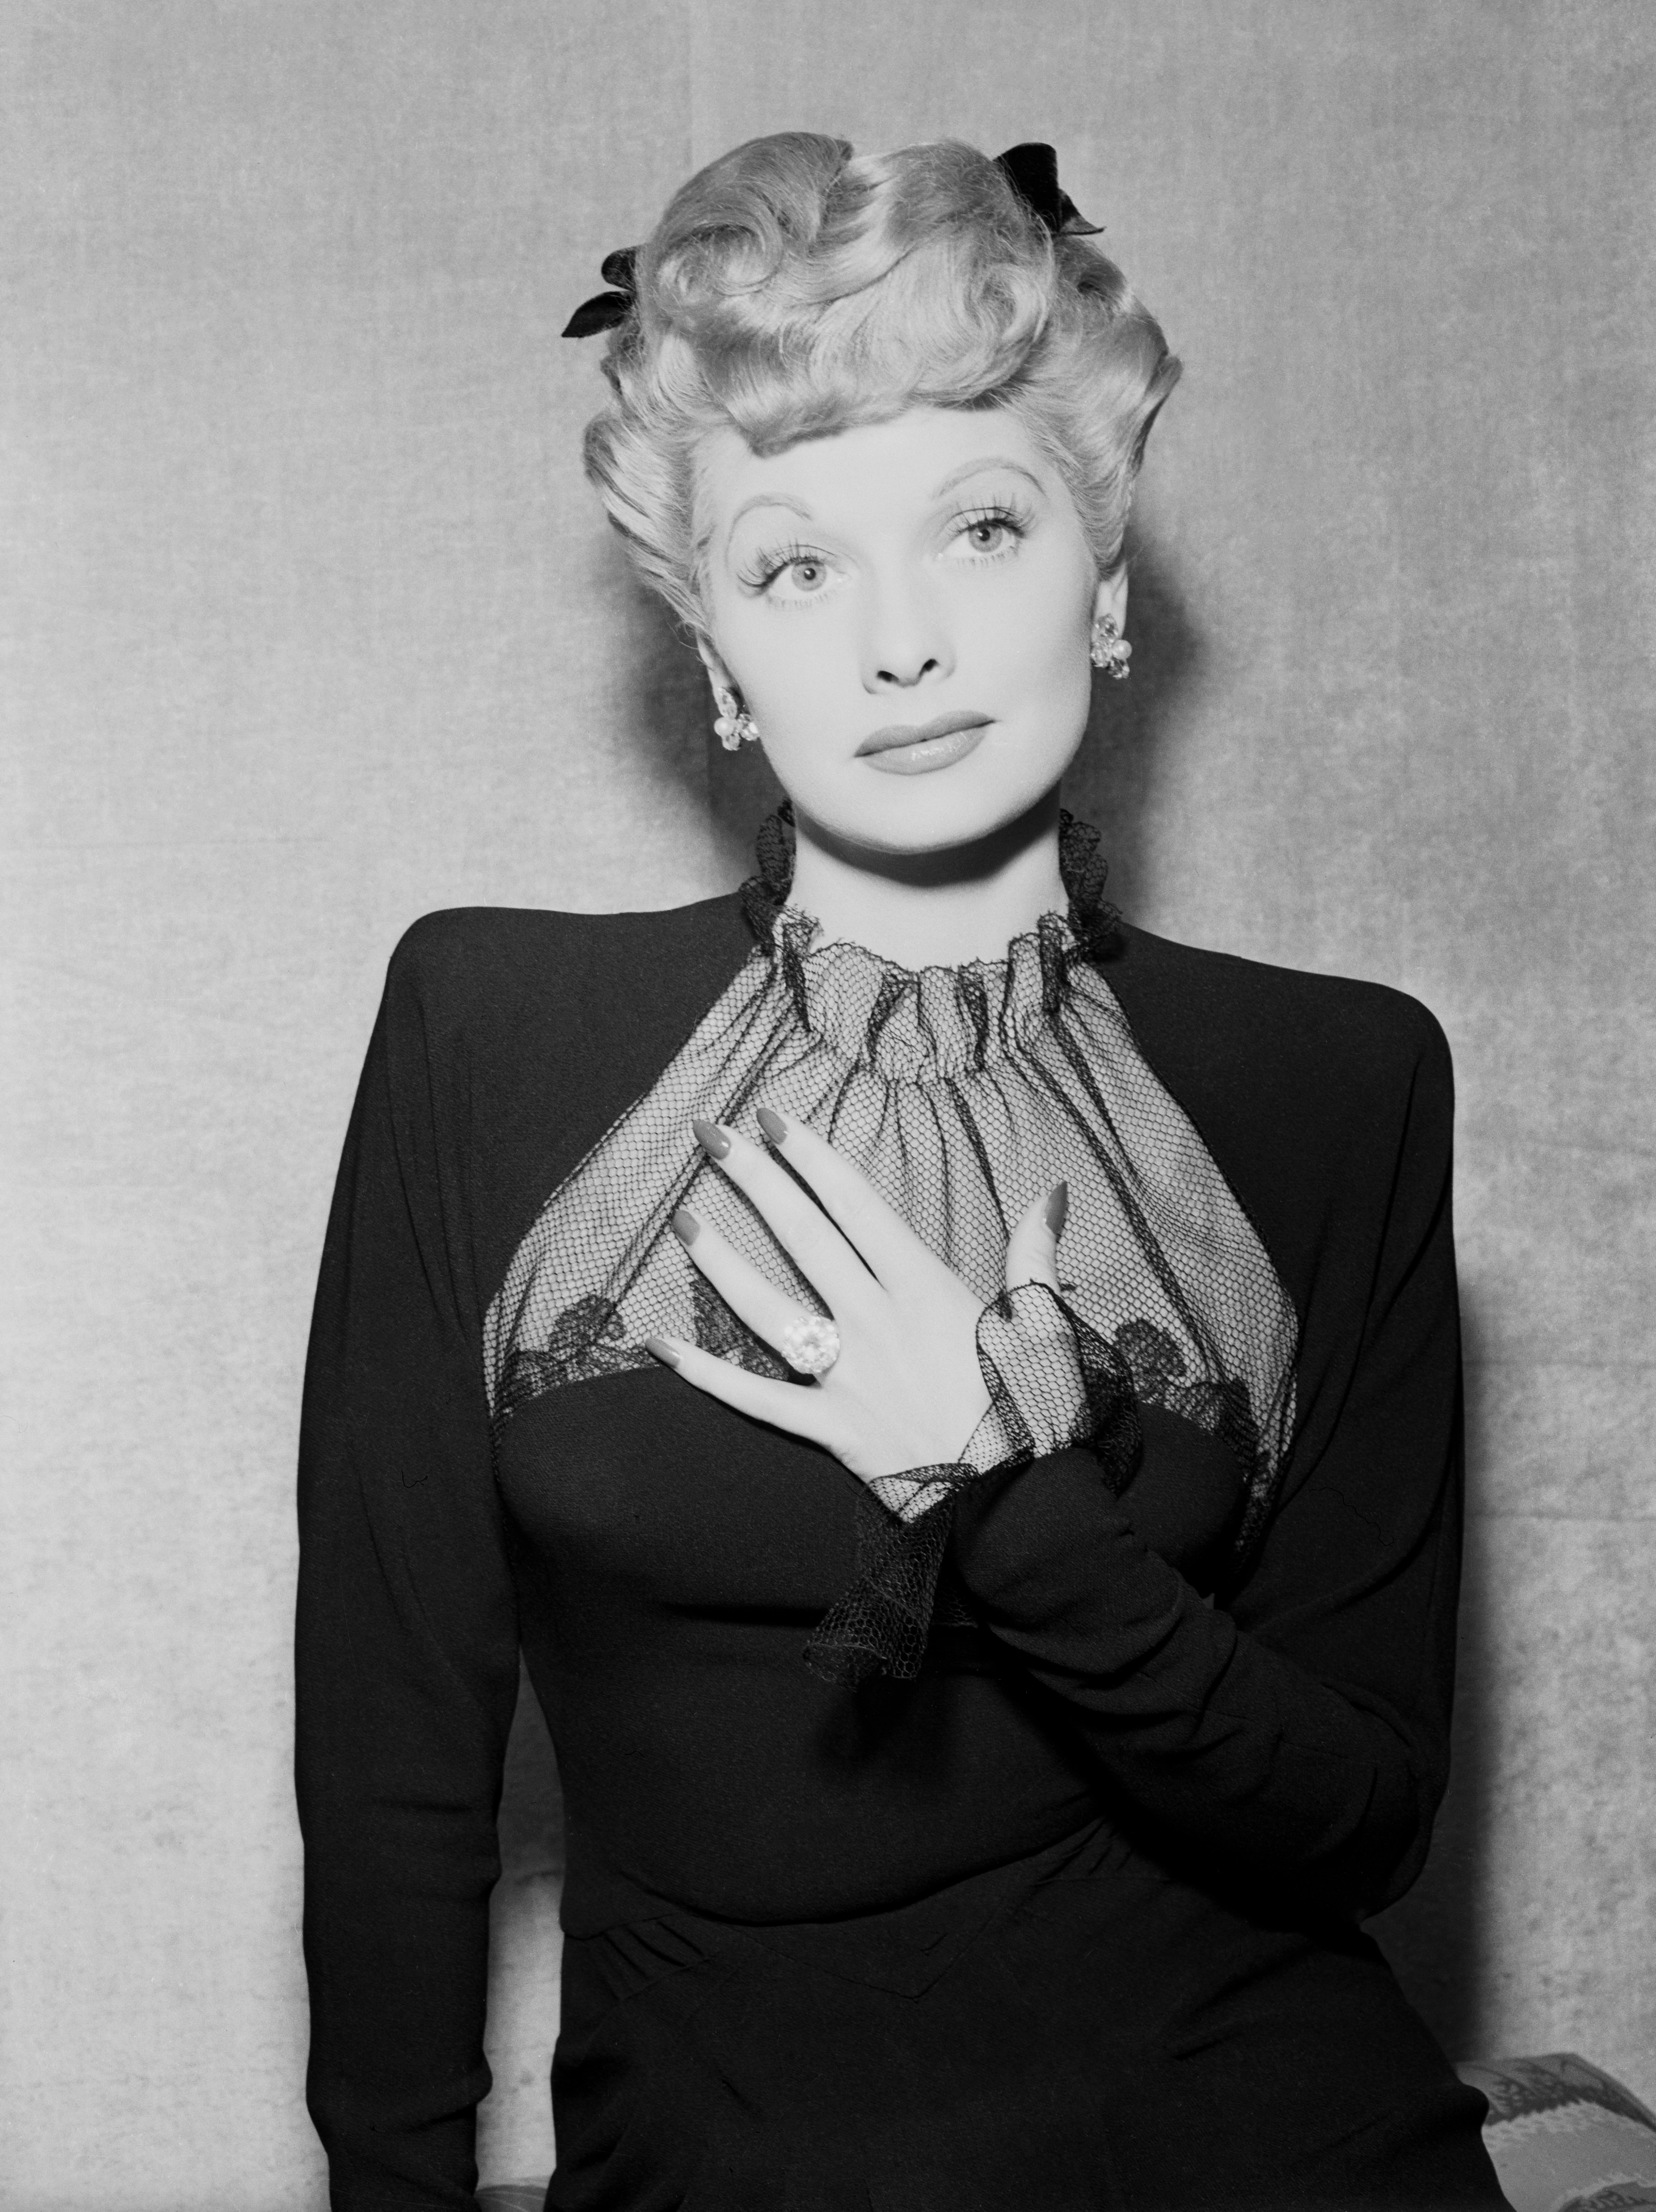 """08 Oct 1943 --- Original caption: Lucille Ball, who was currently starring in MGM's Meet The People,"""" was married to Desi Arnaz, who was later in the Army. With marriages then expected to reach an all time high of 2,000,000 in 1943, public interest in engagement and marriage rings was correspondingly high. Lucille Ball is shown wearing the ring chosen by herself as a Hollywood bride to be. --- Image by © Bettmann/CORBIS"""